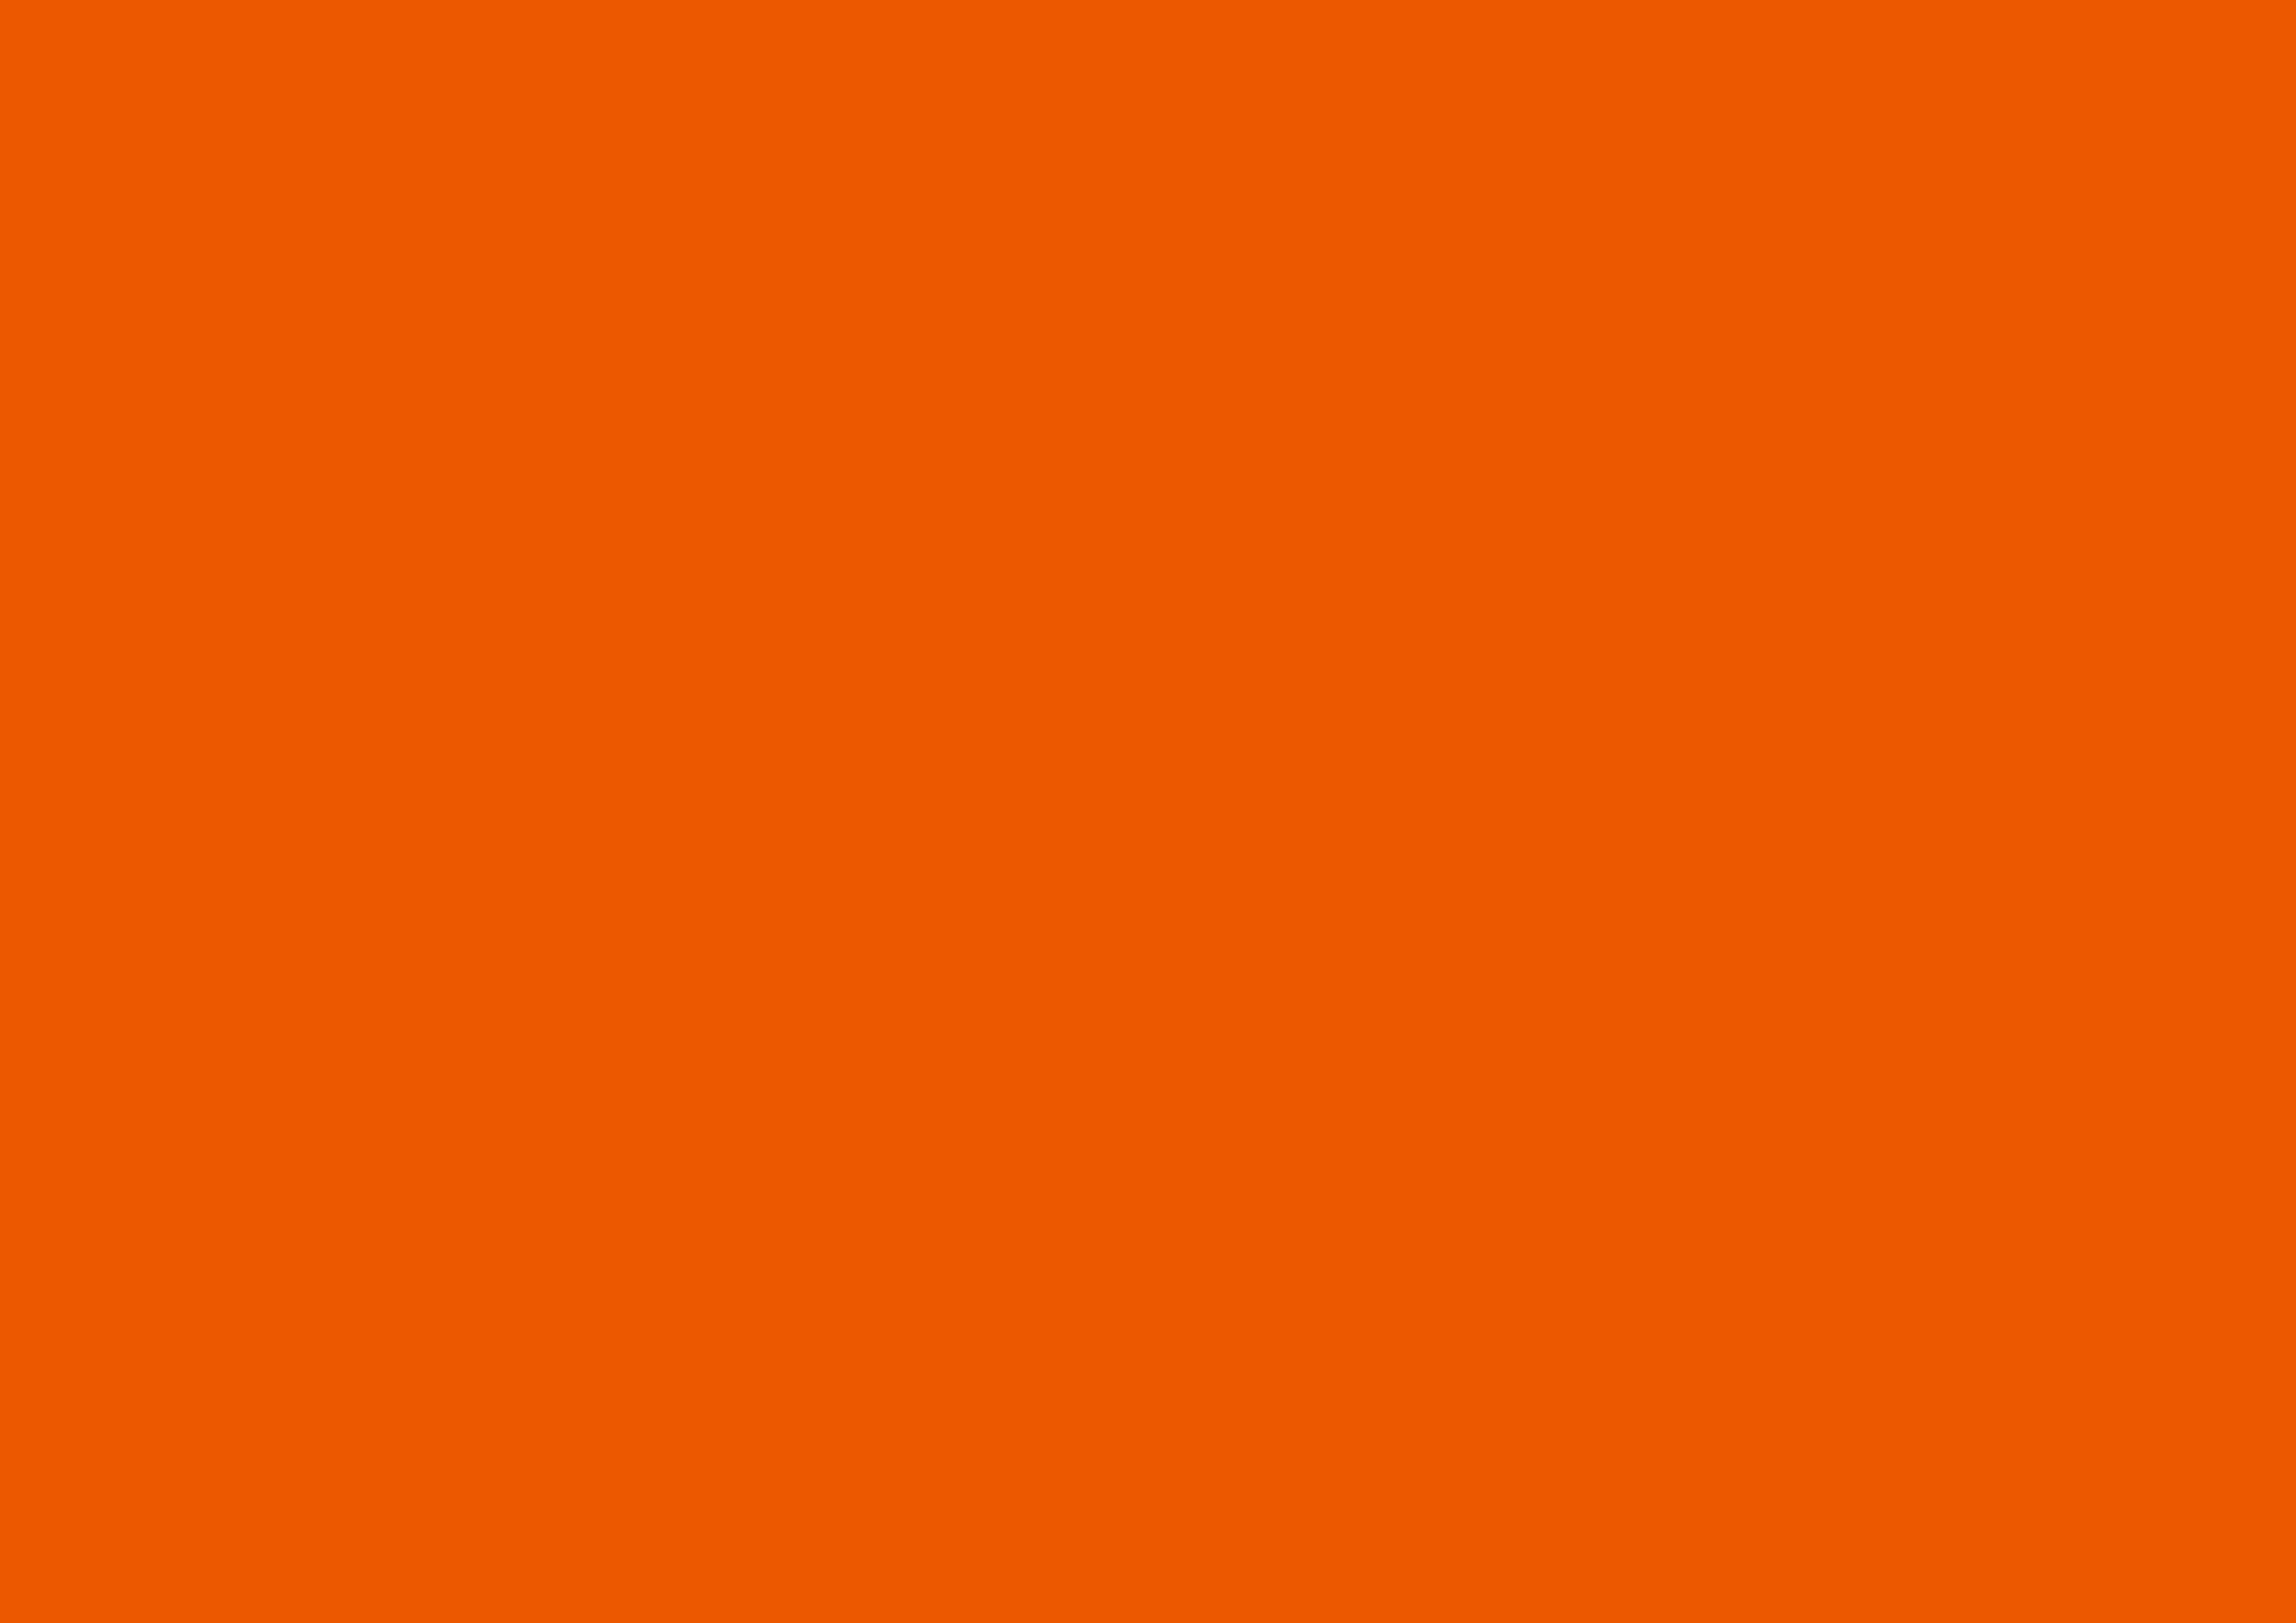 3508x2480 Persimmon Solid Color Background